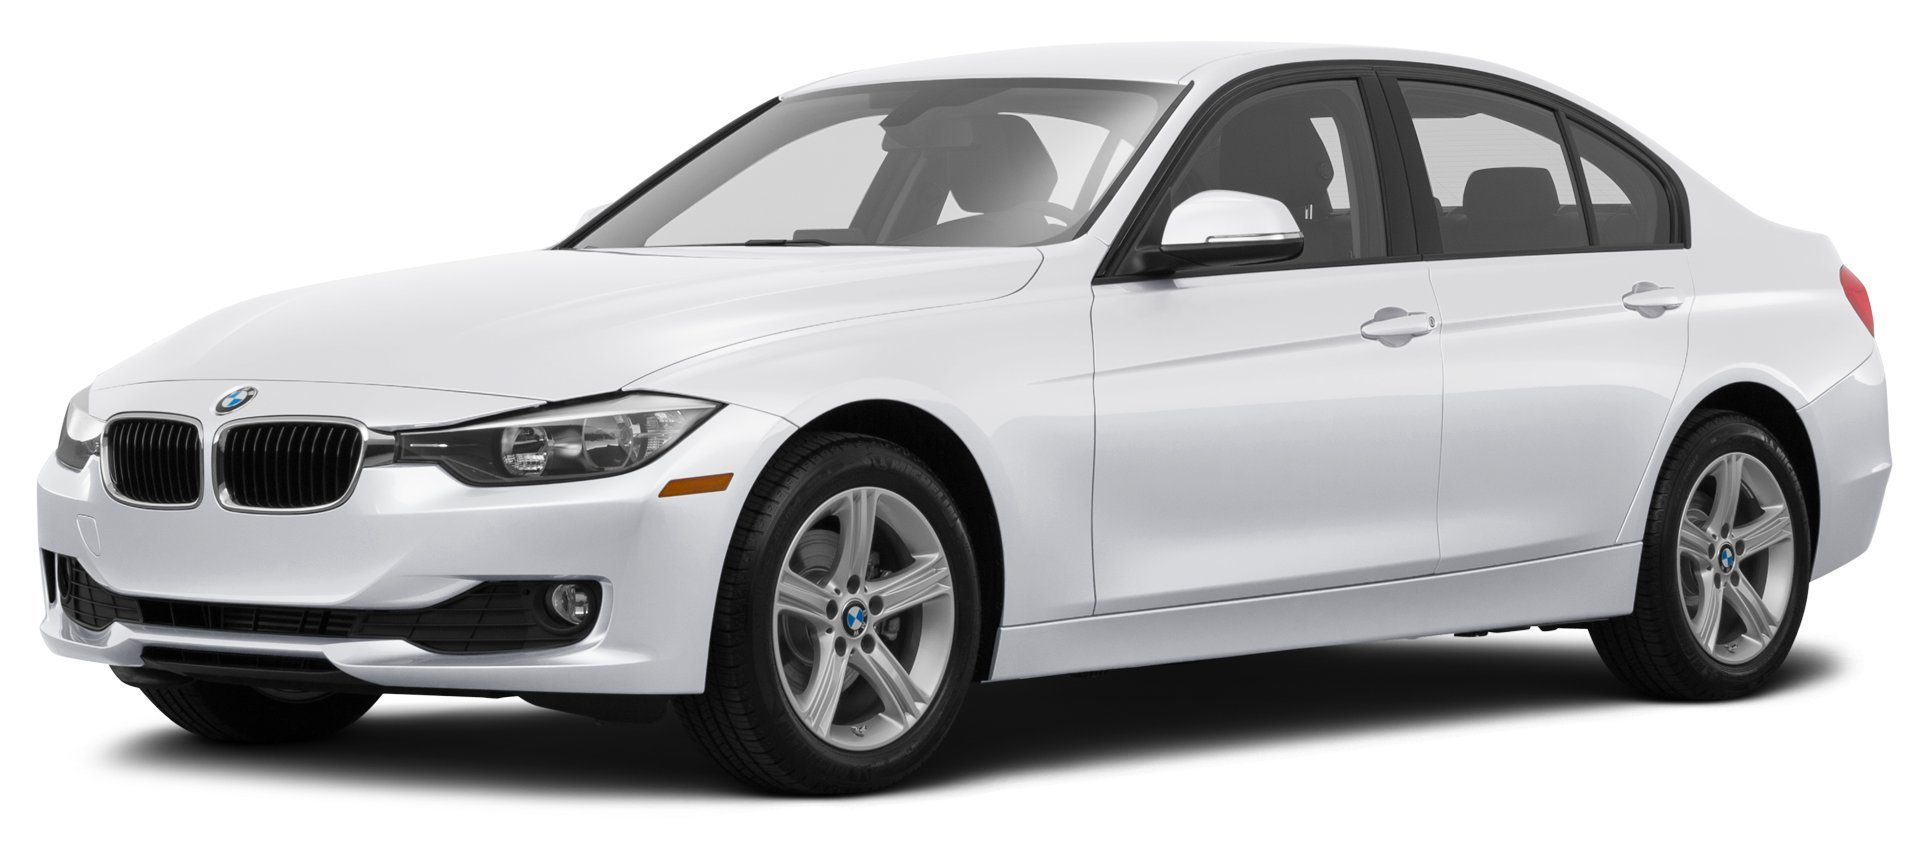 2015 bmw 320i xdrive reviews images and specs vehicles. Black Bedroom Furniture Sets. Home Design Ideas